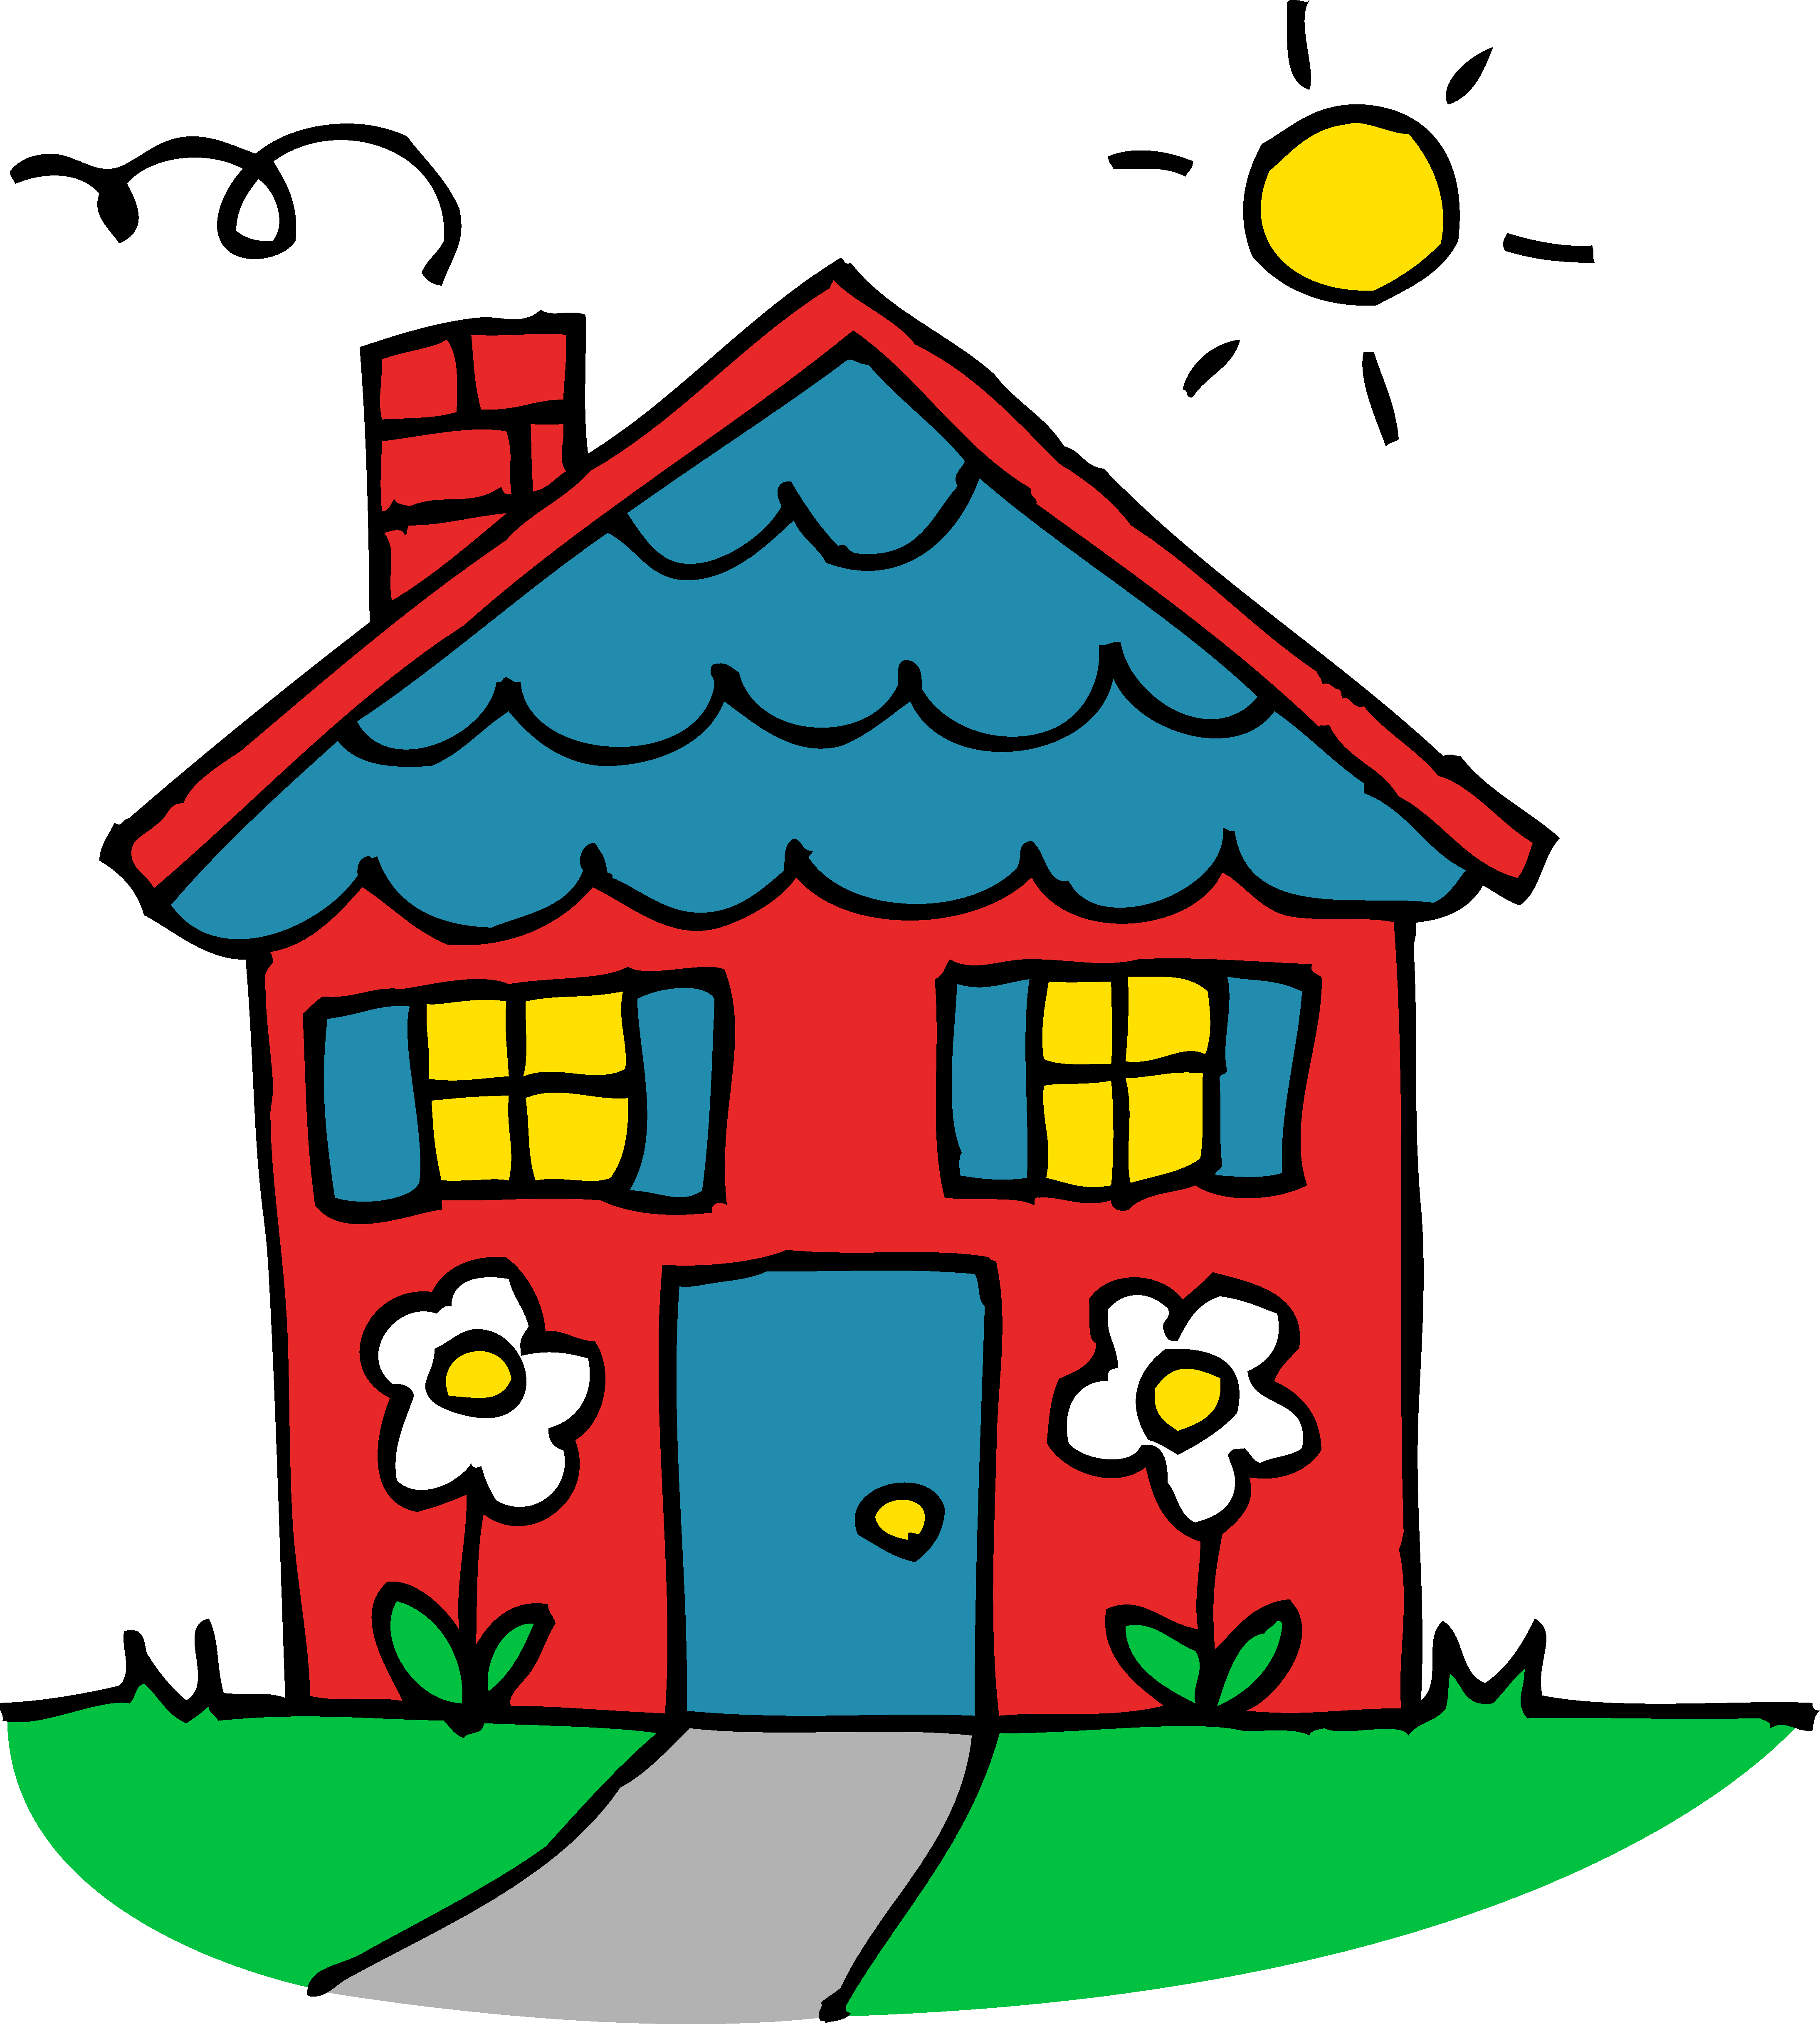 House for sale clip art clipart panda free clipart images for Casa amarilla musica